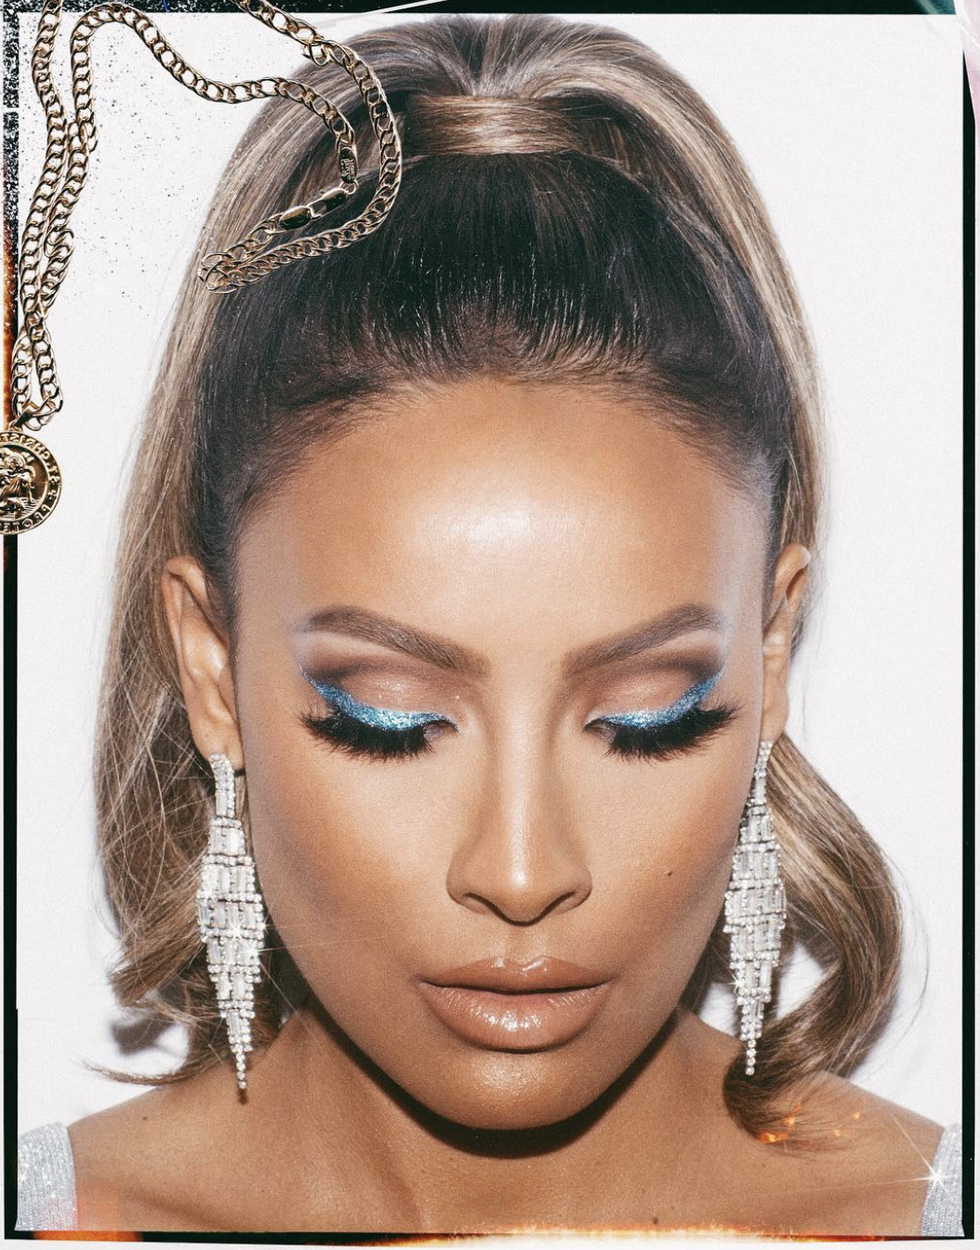 The Best Eyelash Glue According to Desi Perkins, Jackie Aina and More Beauty Influencers